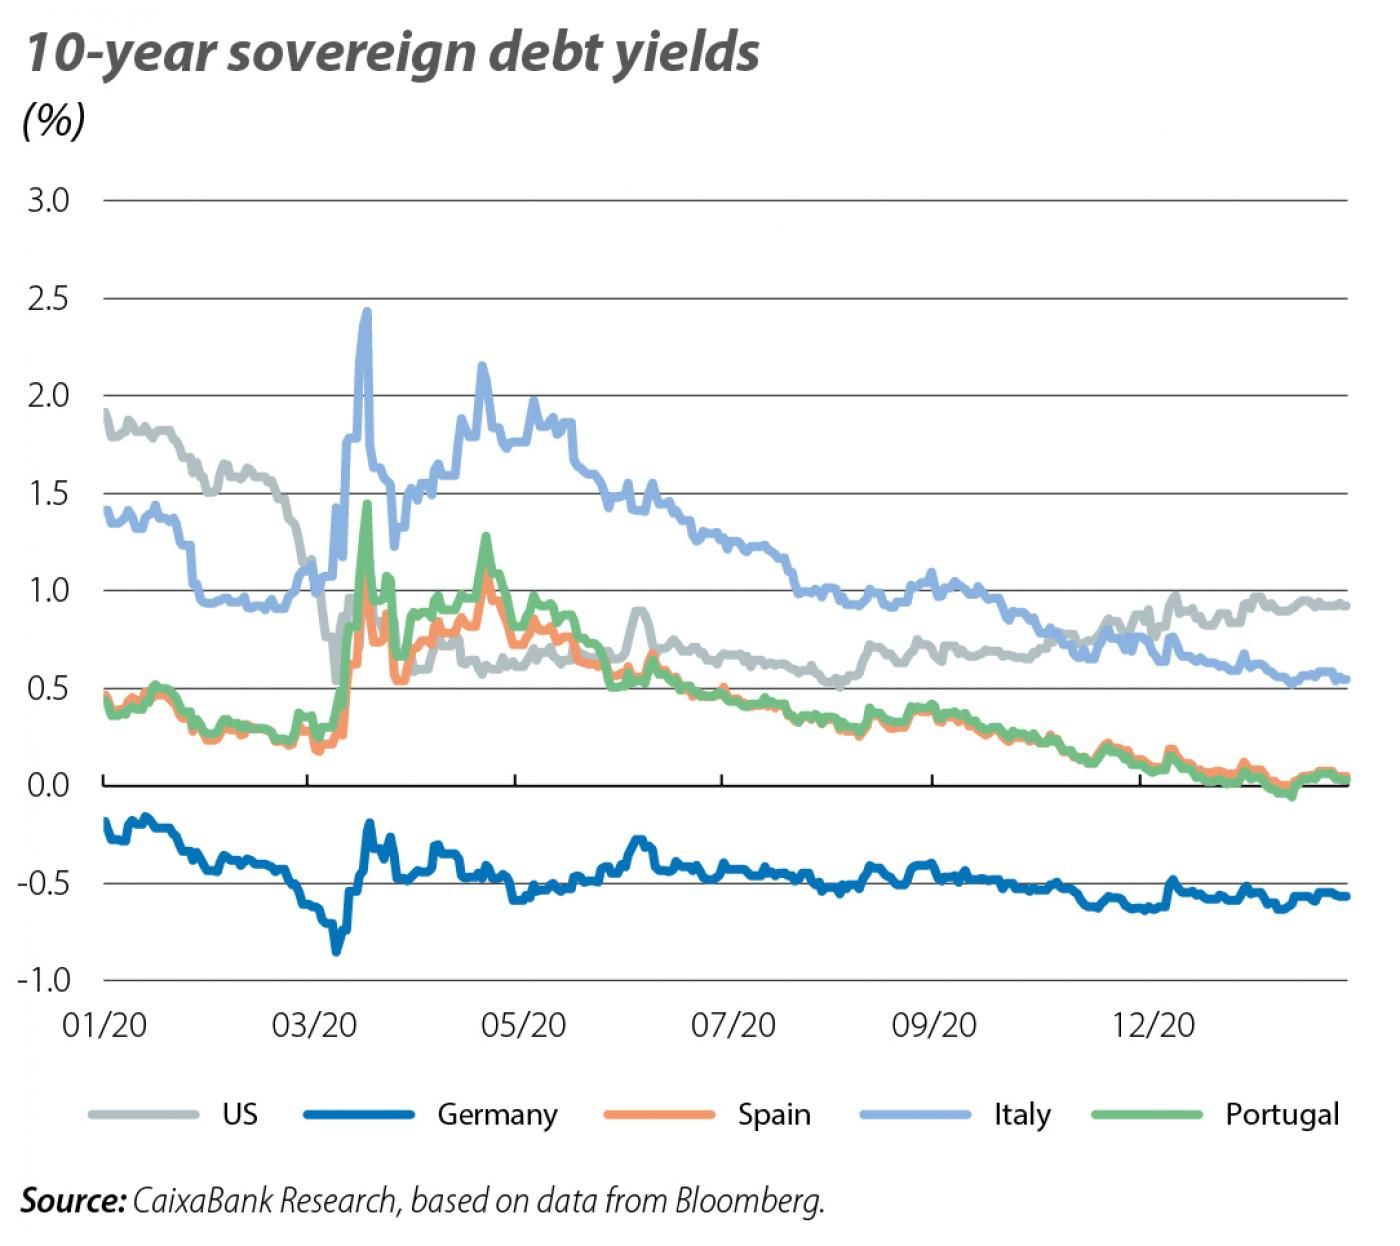 10-year sovereign debt yields